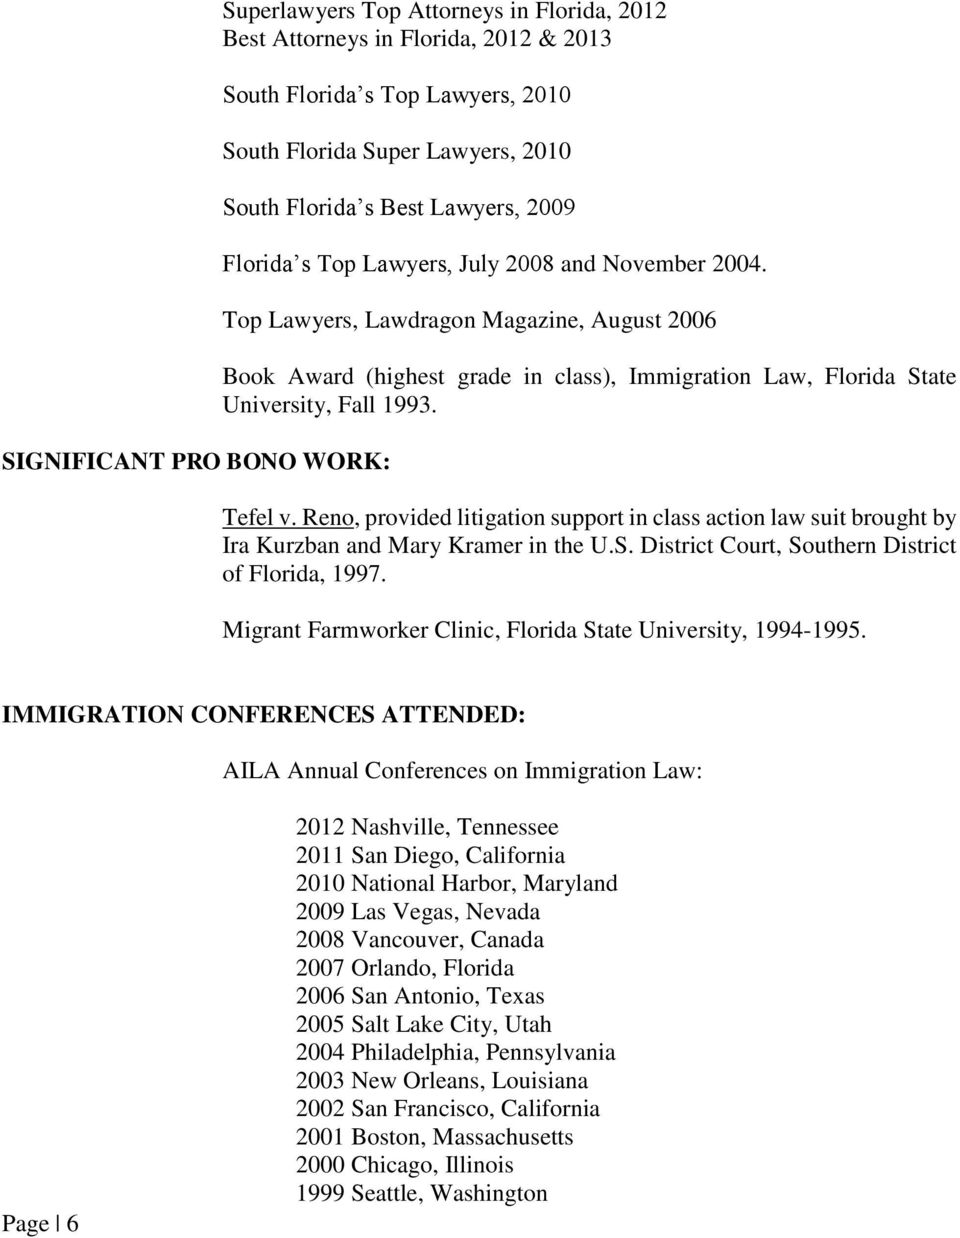 Top Lawyers, Lawdragon Magazine, August 2006 Book Award (highest grade in class), Immigration Law, Florida State University, Fall 1993. Tefel v.